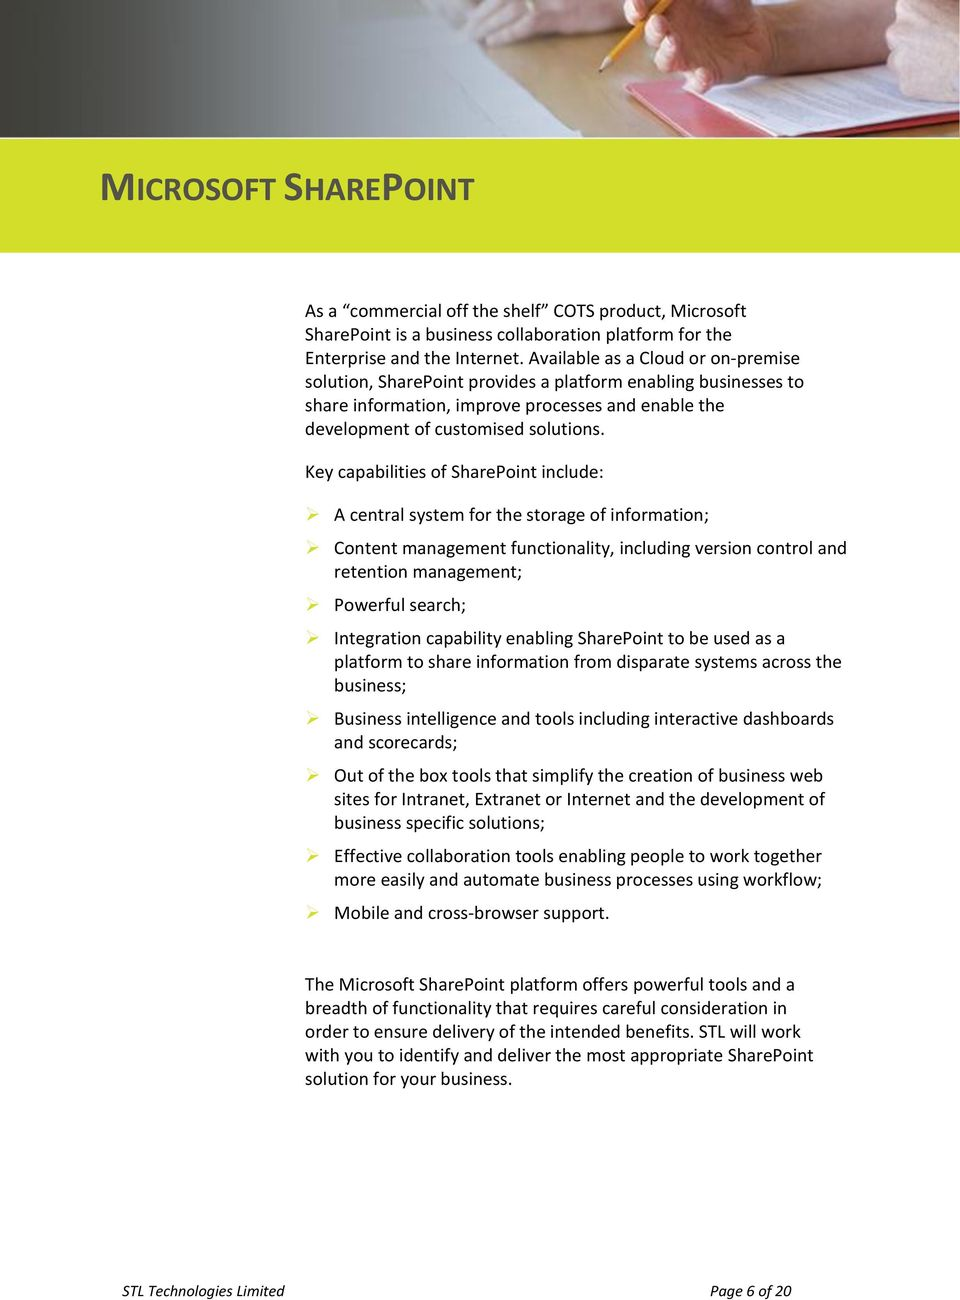 Key capabilities of SharePoint include: A central system for the storage of information; Content management functionality, including version control and retention management; Powerful search;